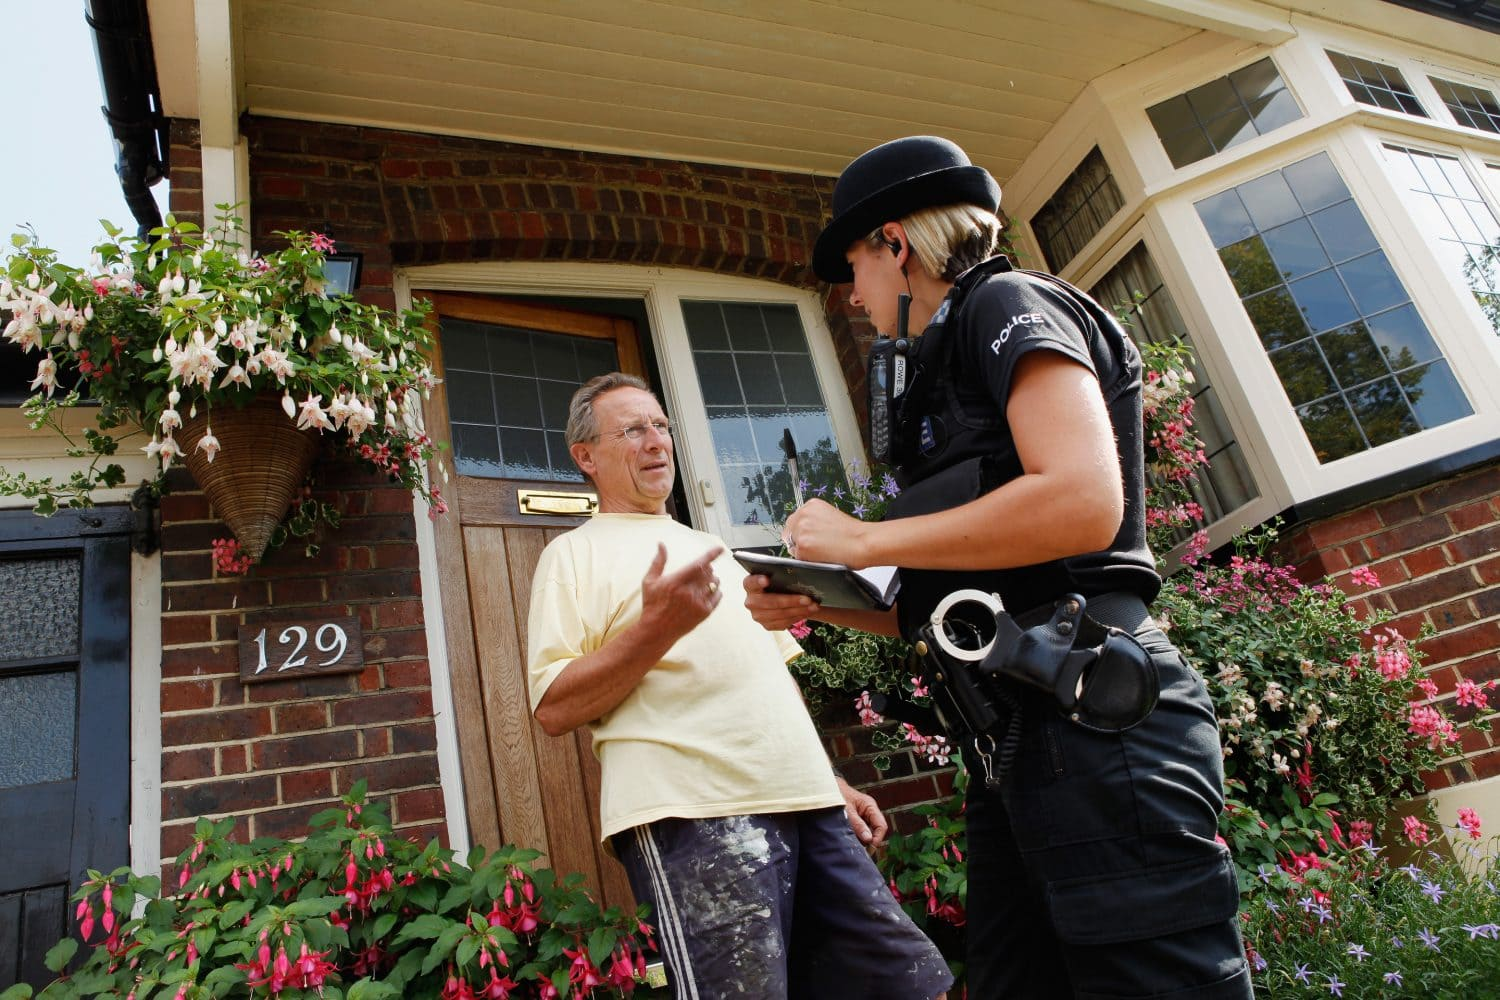 Police Officer with a resident conducting door to door enquiries